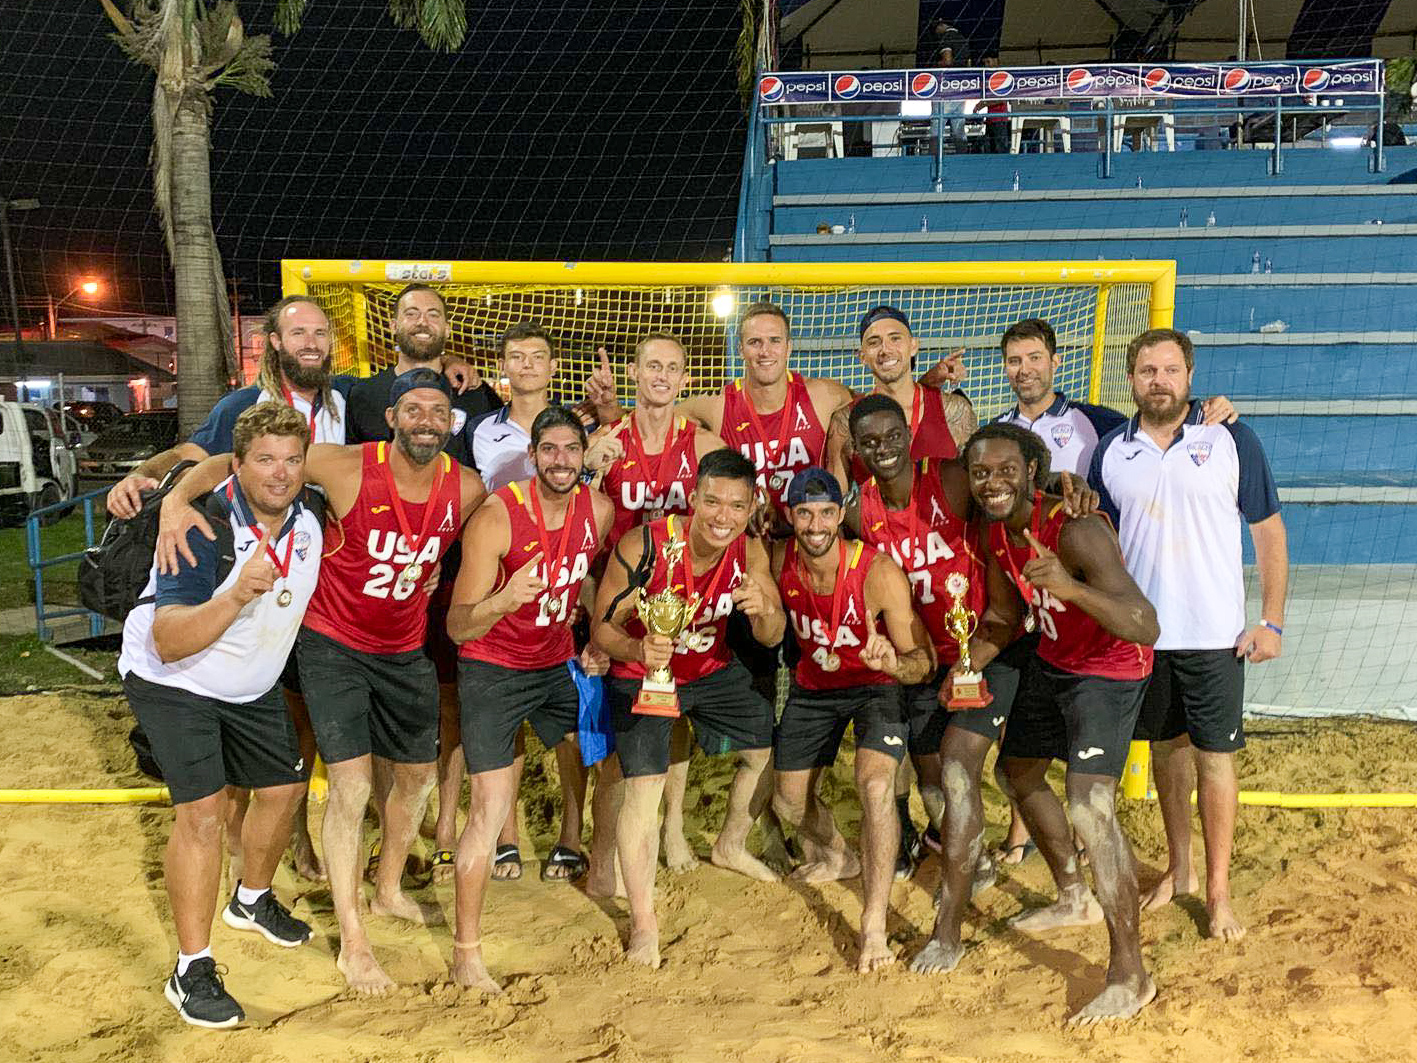 Team USA Wins the 2019 NorCa Beach Handball Championships